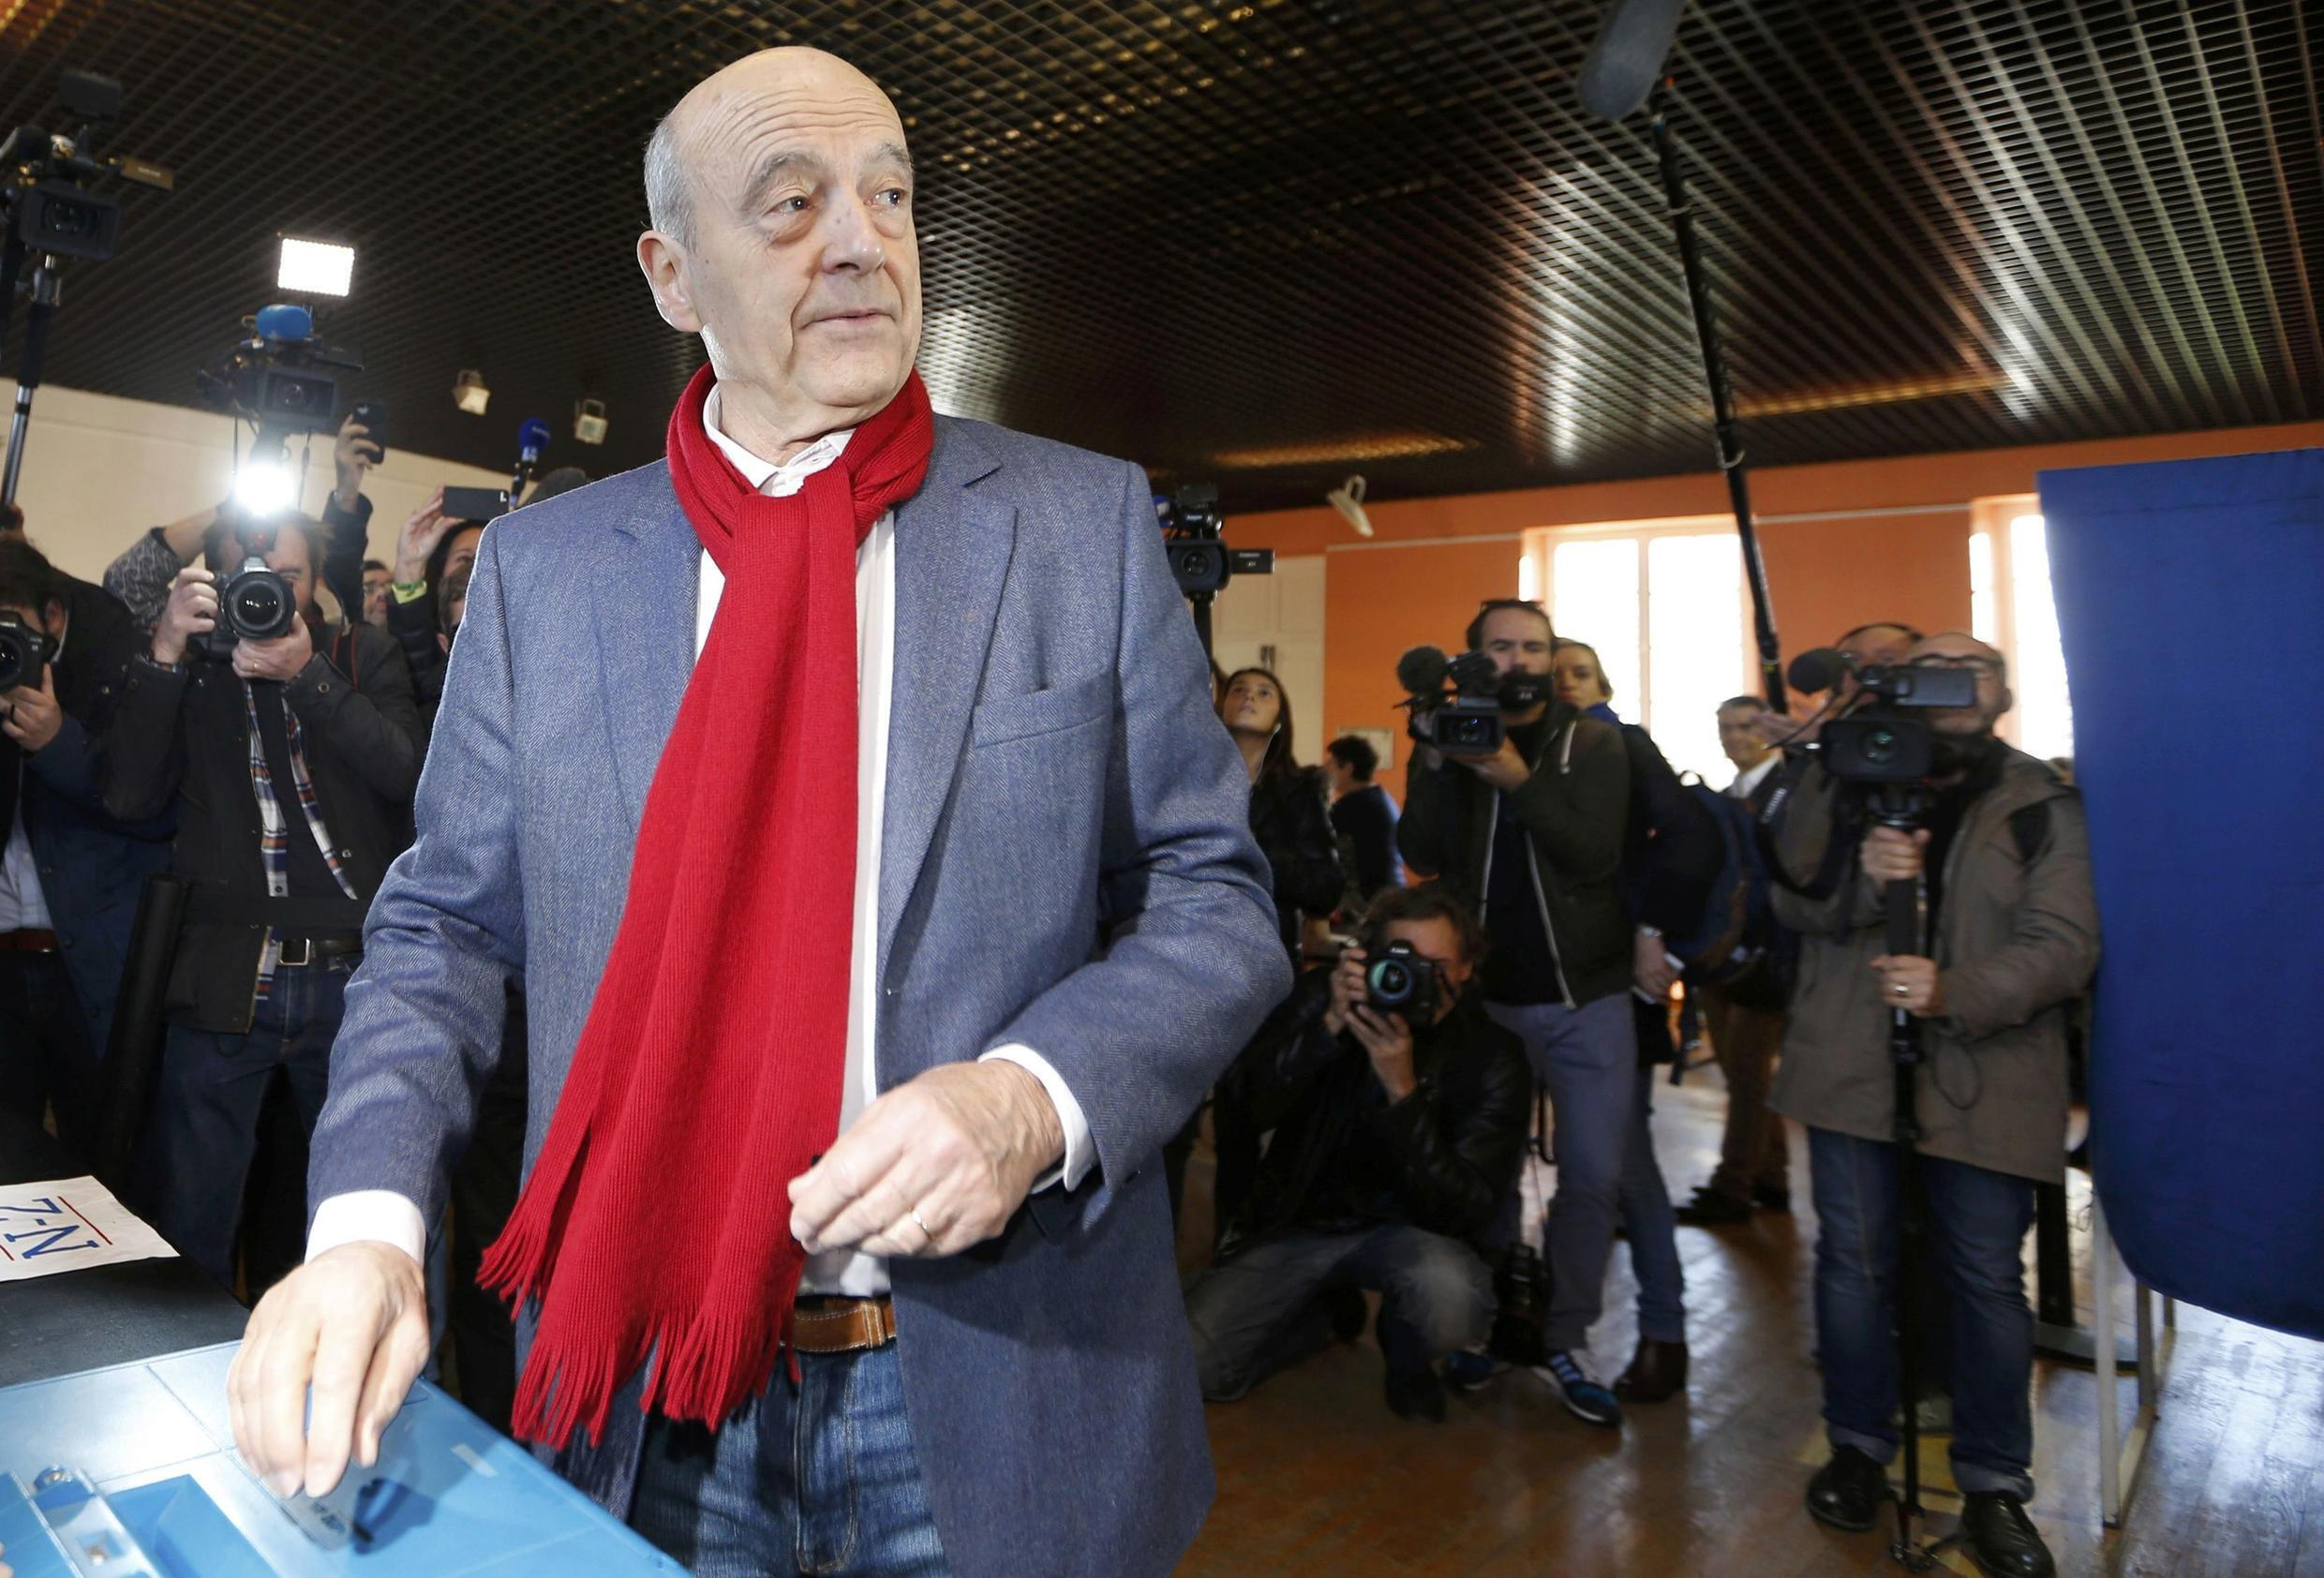 Bordeaux mayor Alain Juppé conceded defeat to François Fillon in the second round of centre-right primary.